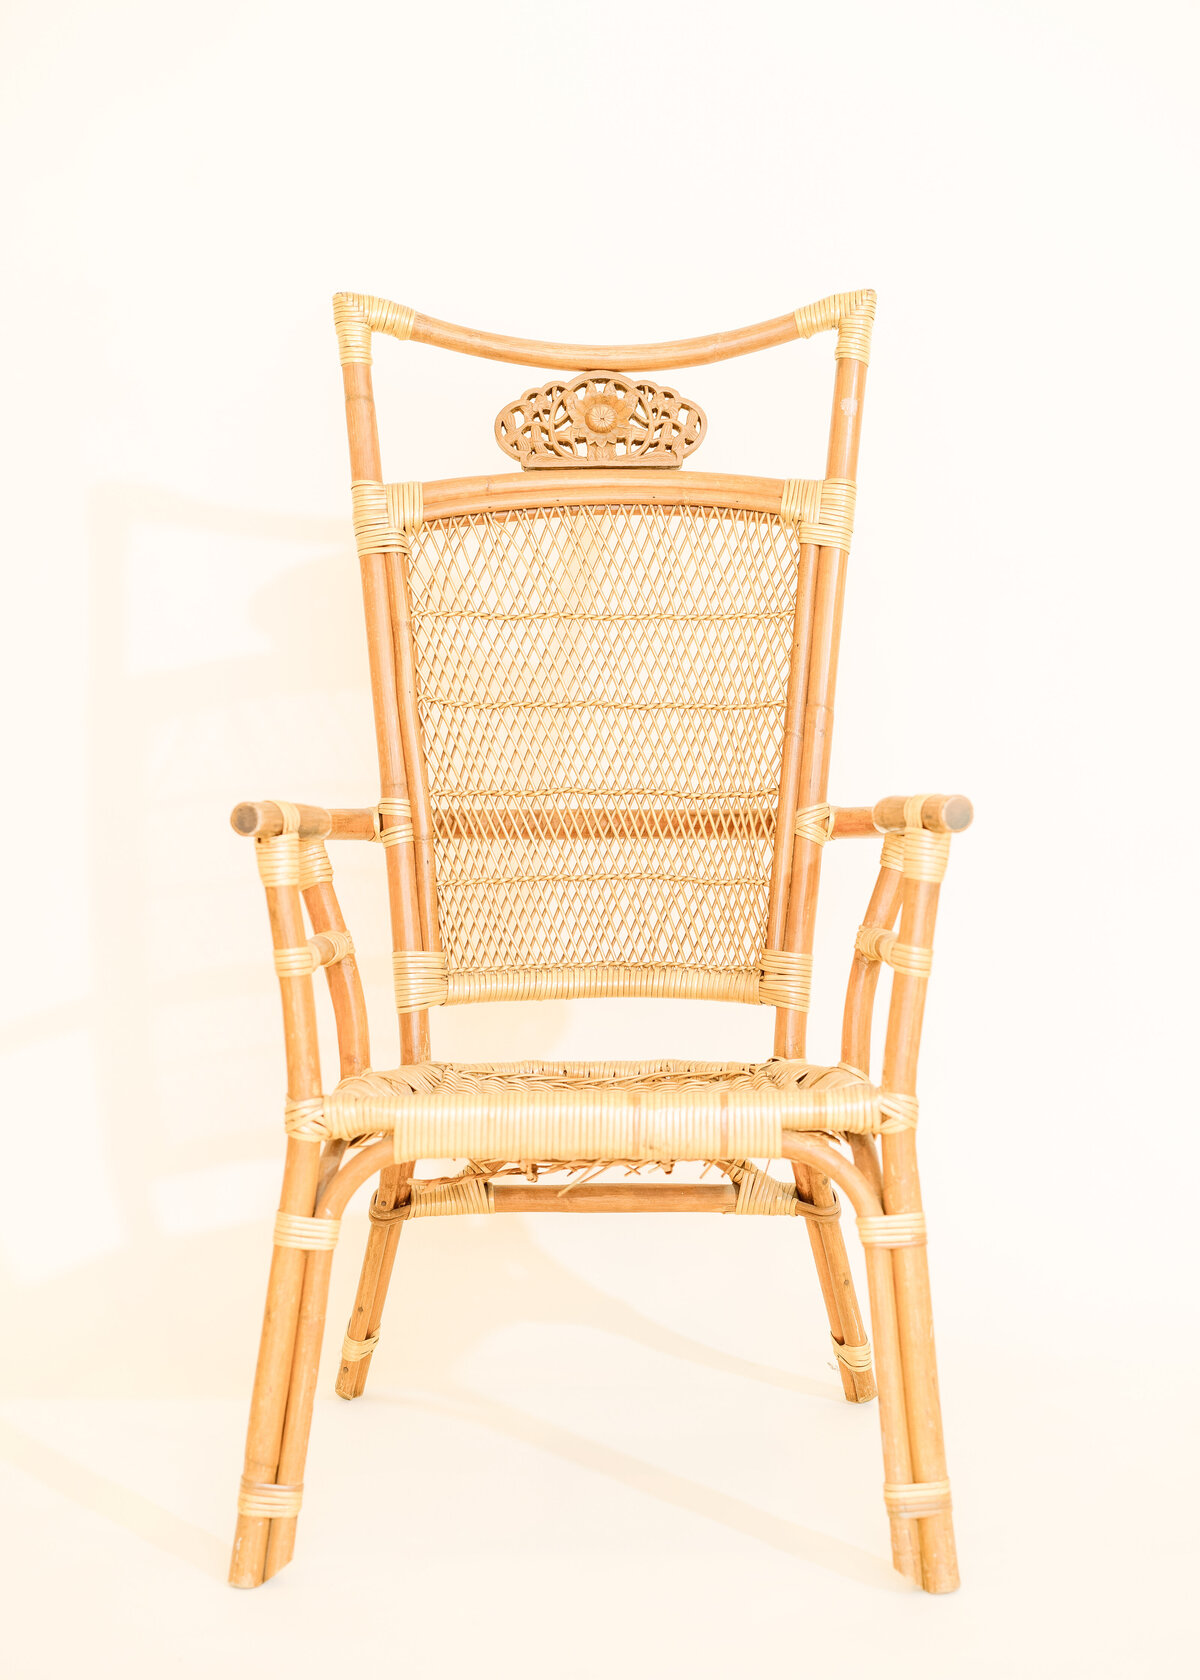 An ornate luxury rattan chair is photographed against a white wall.